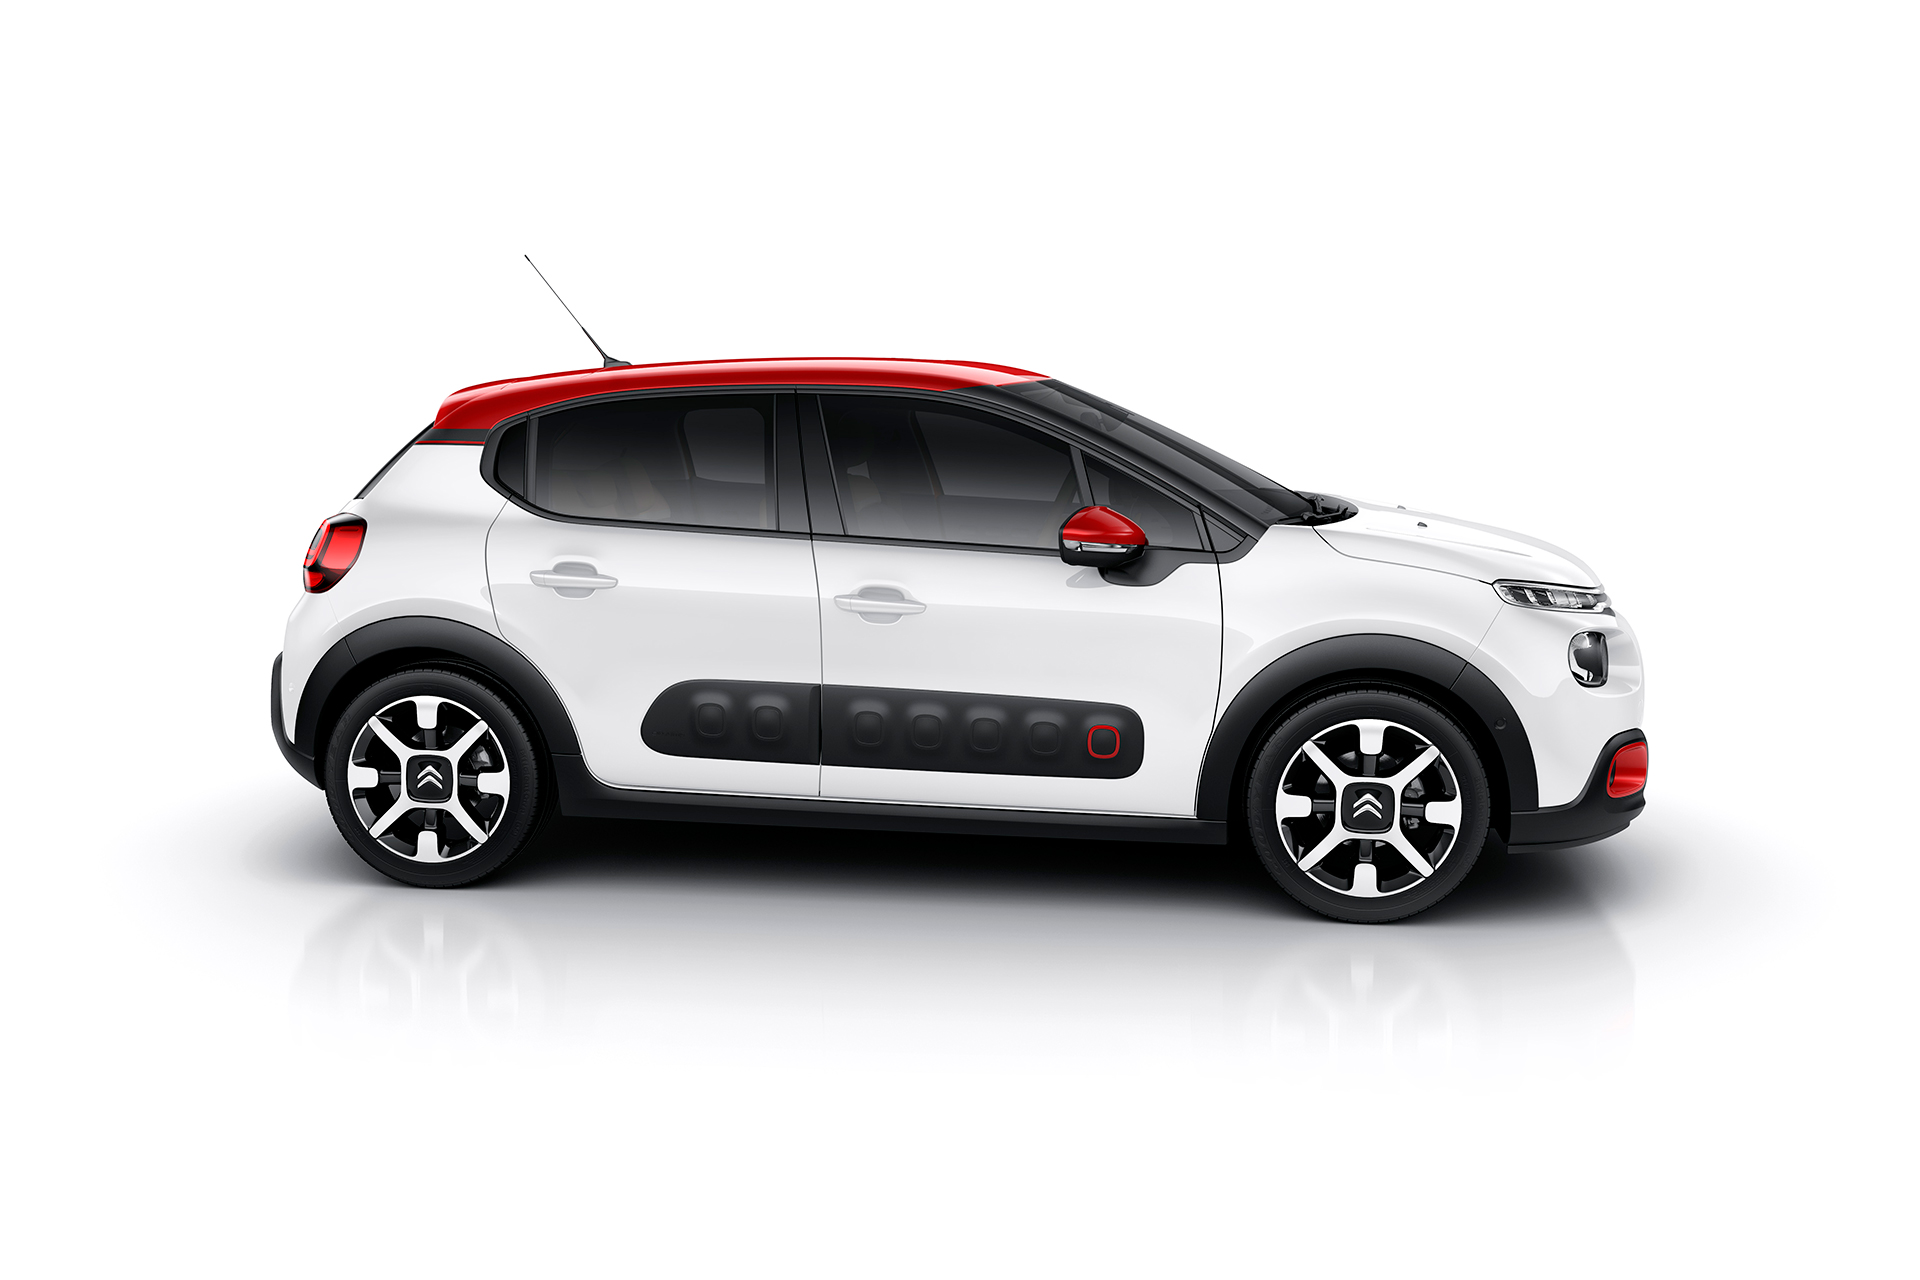 Citroen C3 2016 - side-face / profil